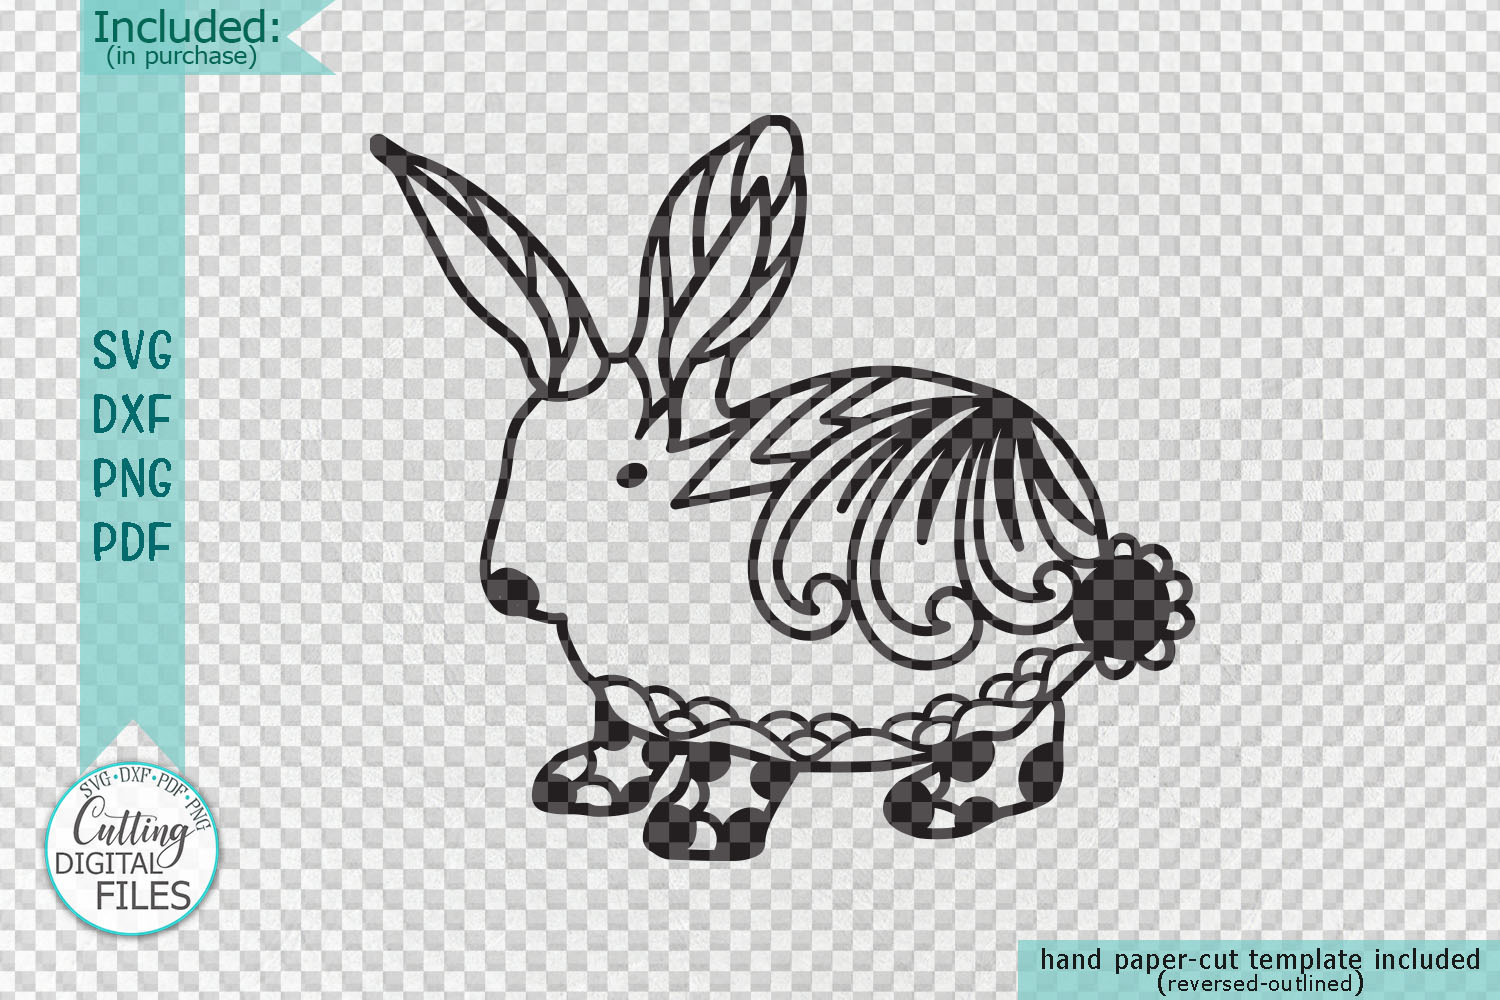 Floral Cute Easter bunny rabbit svg dxf file for machine cut example image 2